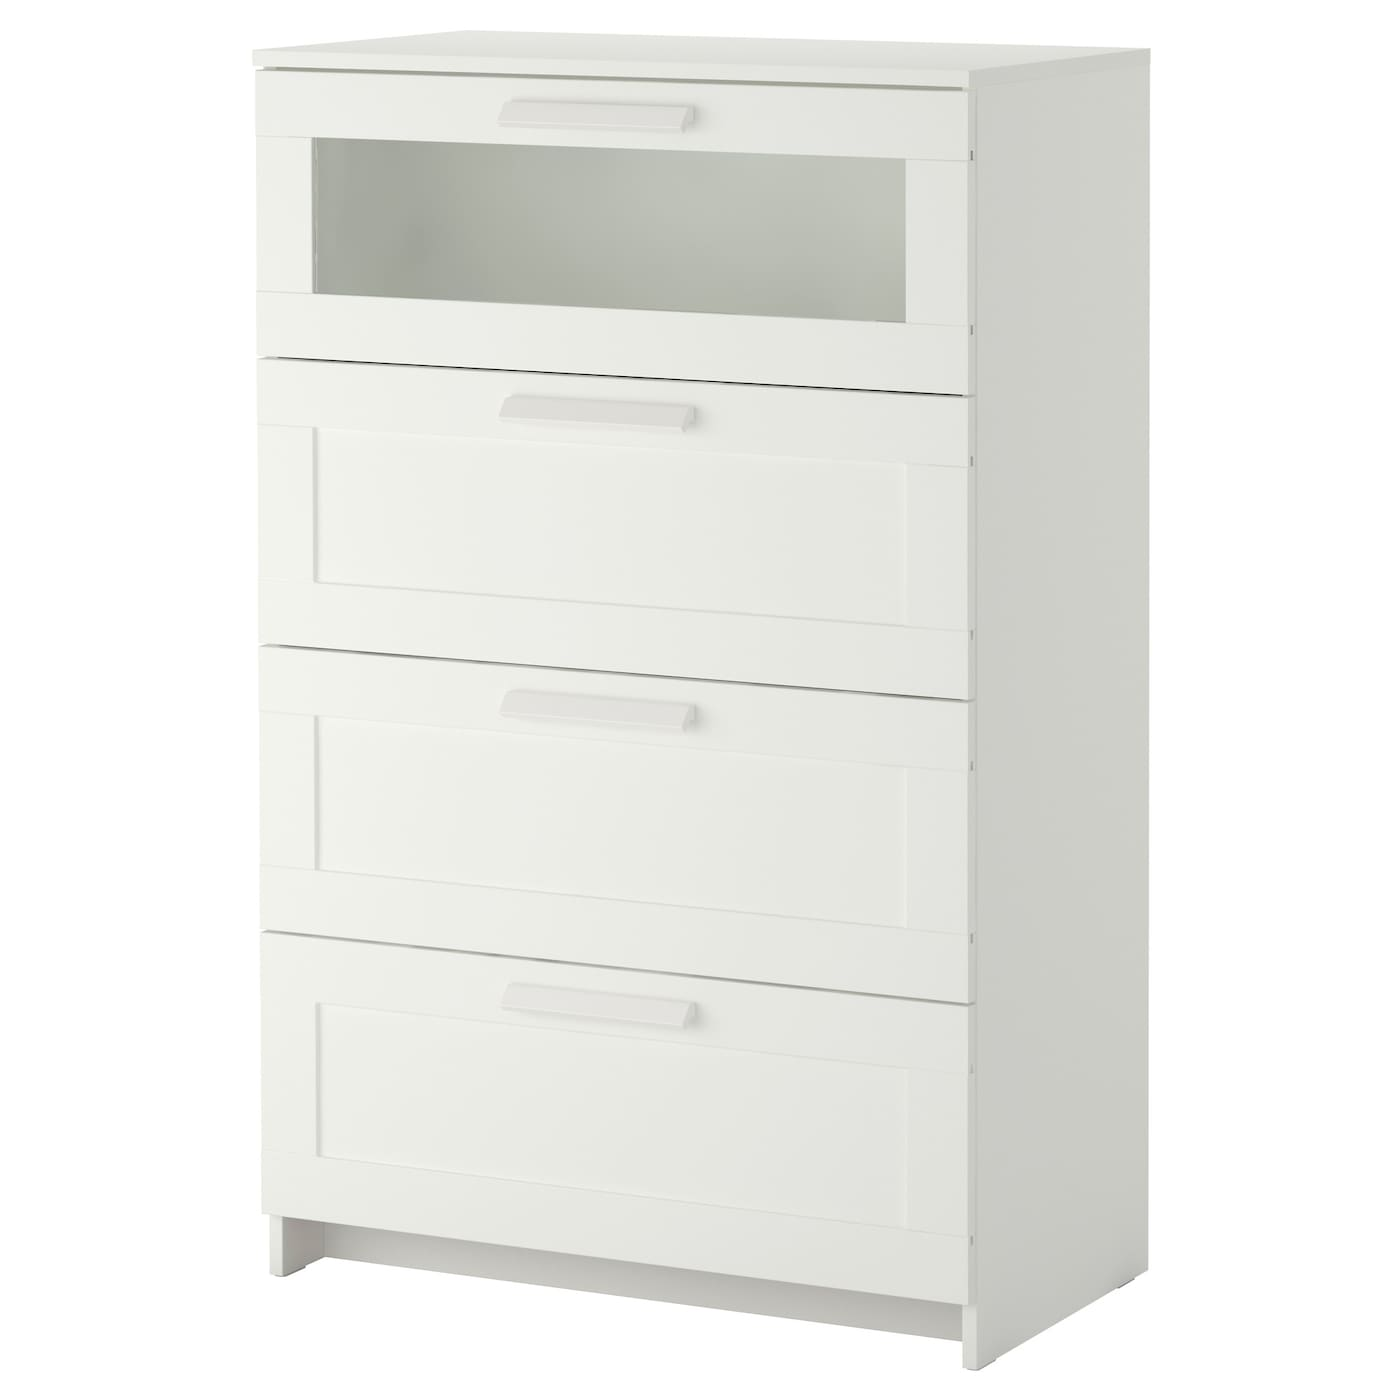 Ikea Brimnes Chest Of 4 Drawers Smooth Running With Pull Out Stop